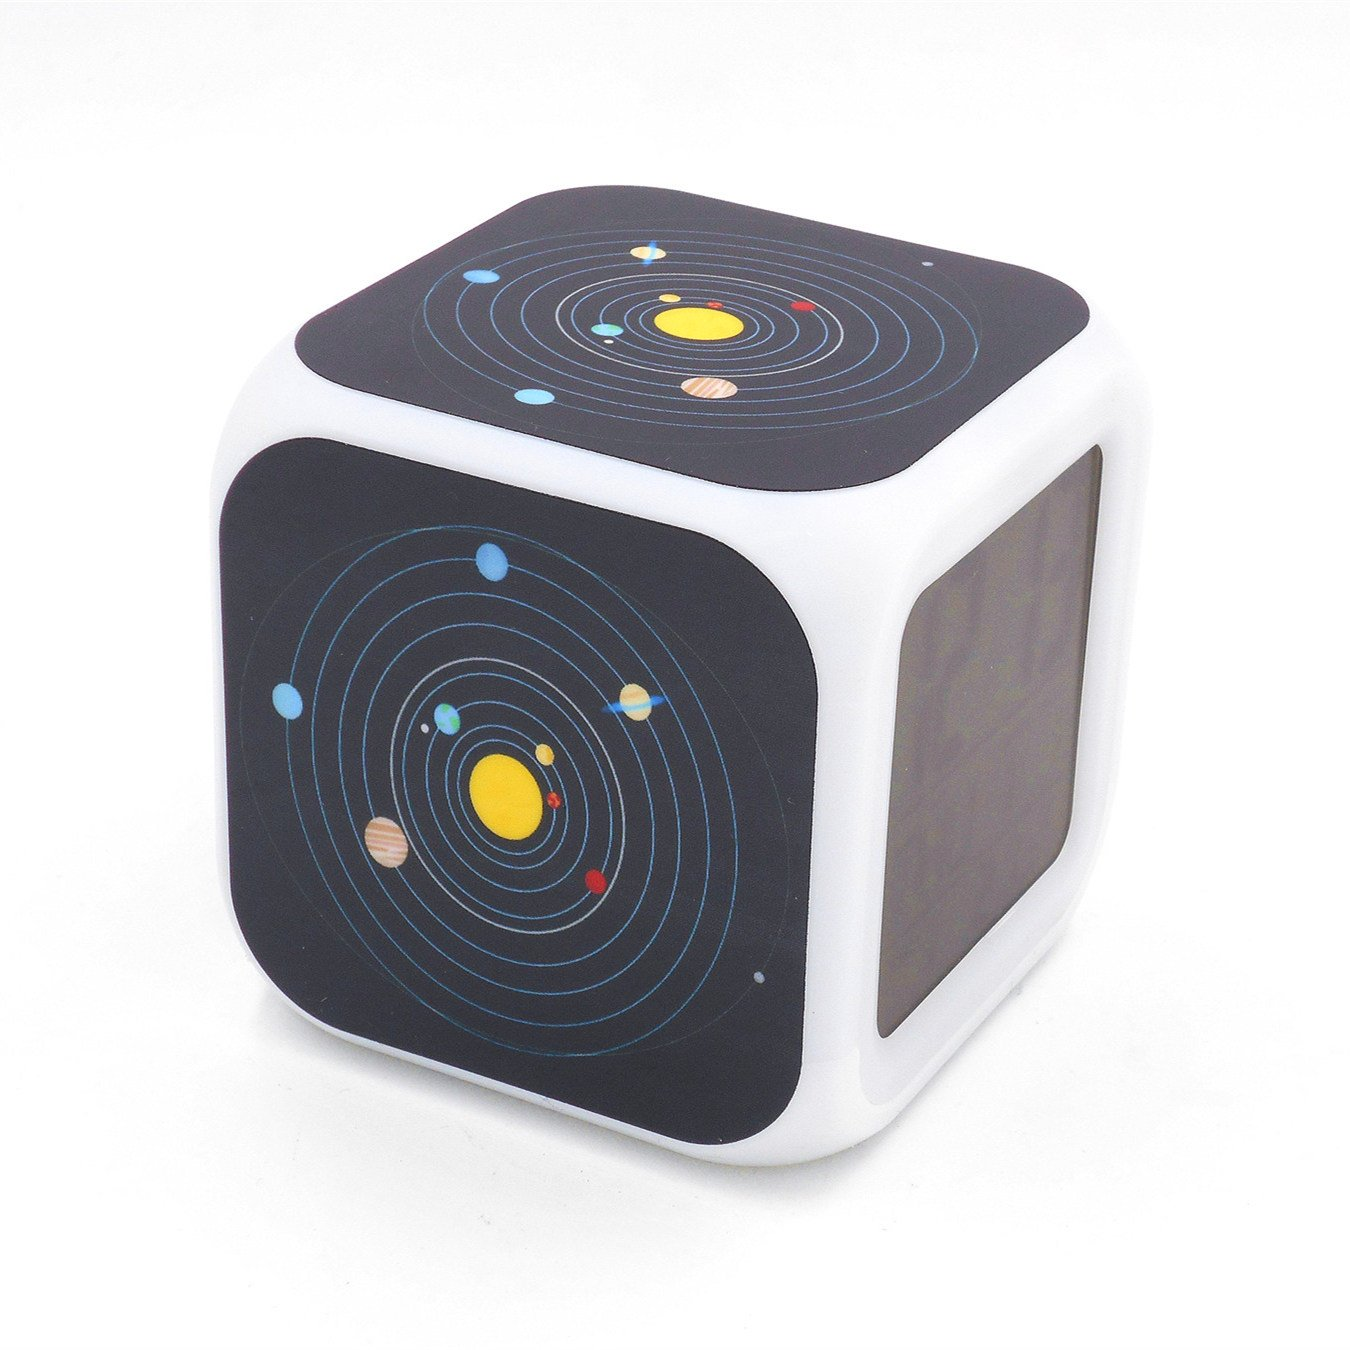 EGS New Sun Solar System Nine Planets Digital Alarm Clock Desk Table Led Alarm Clock Creative Personalized Multifunctional Battery Alarm Clock Special Toy Gift for Unisex Kids Adults